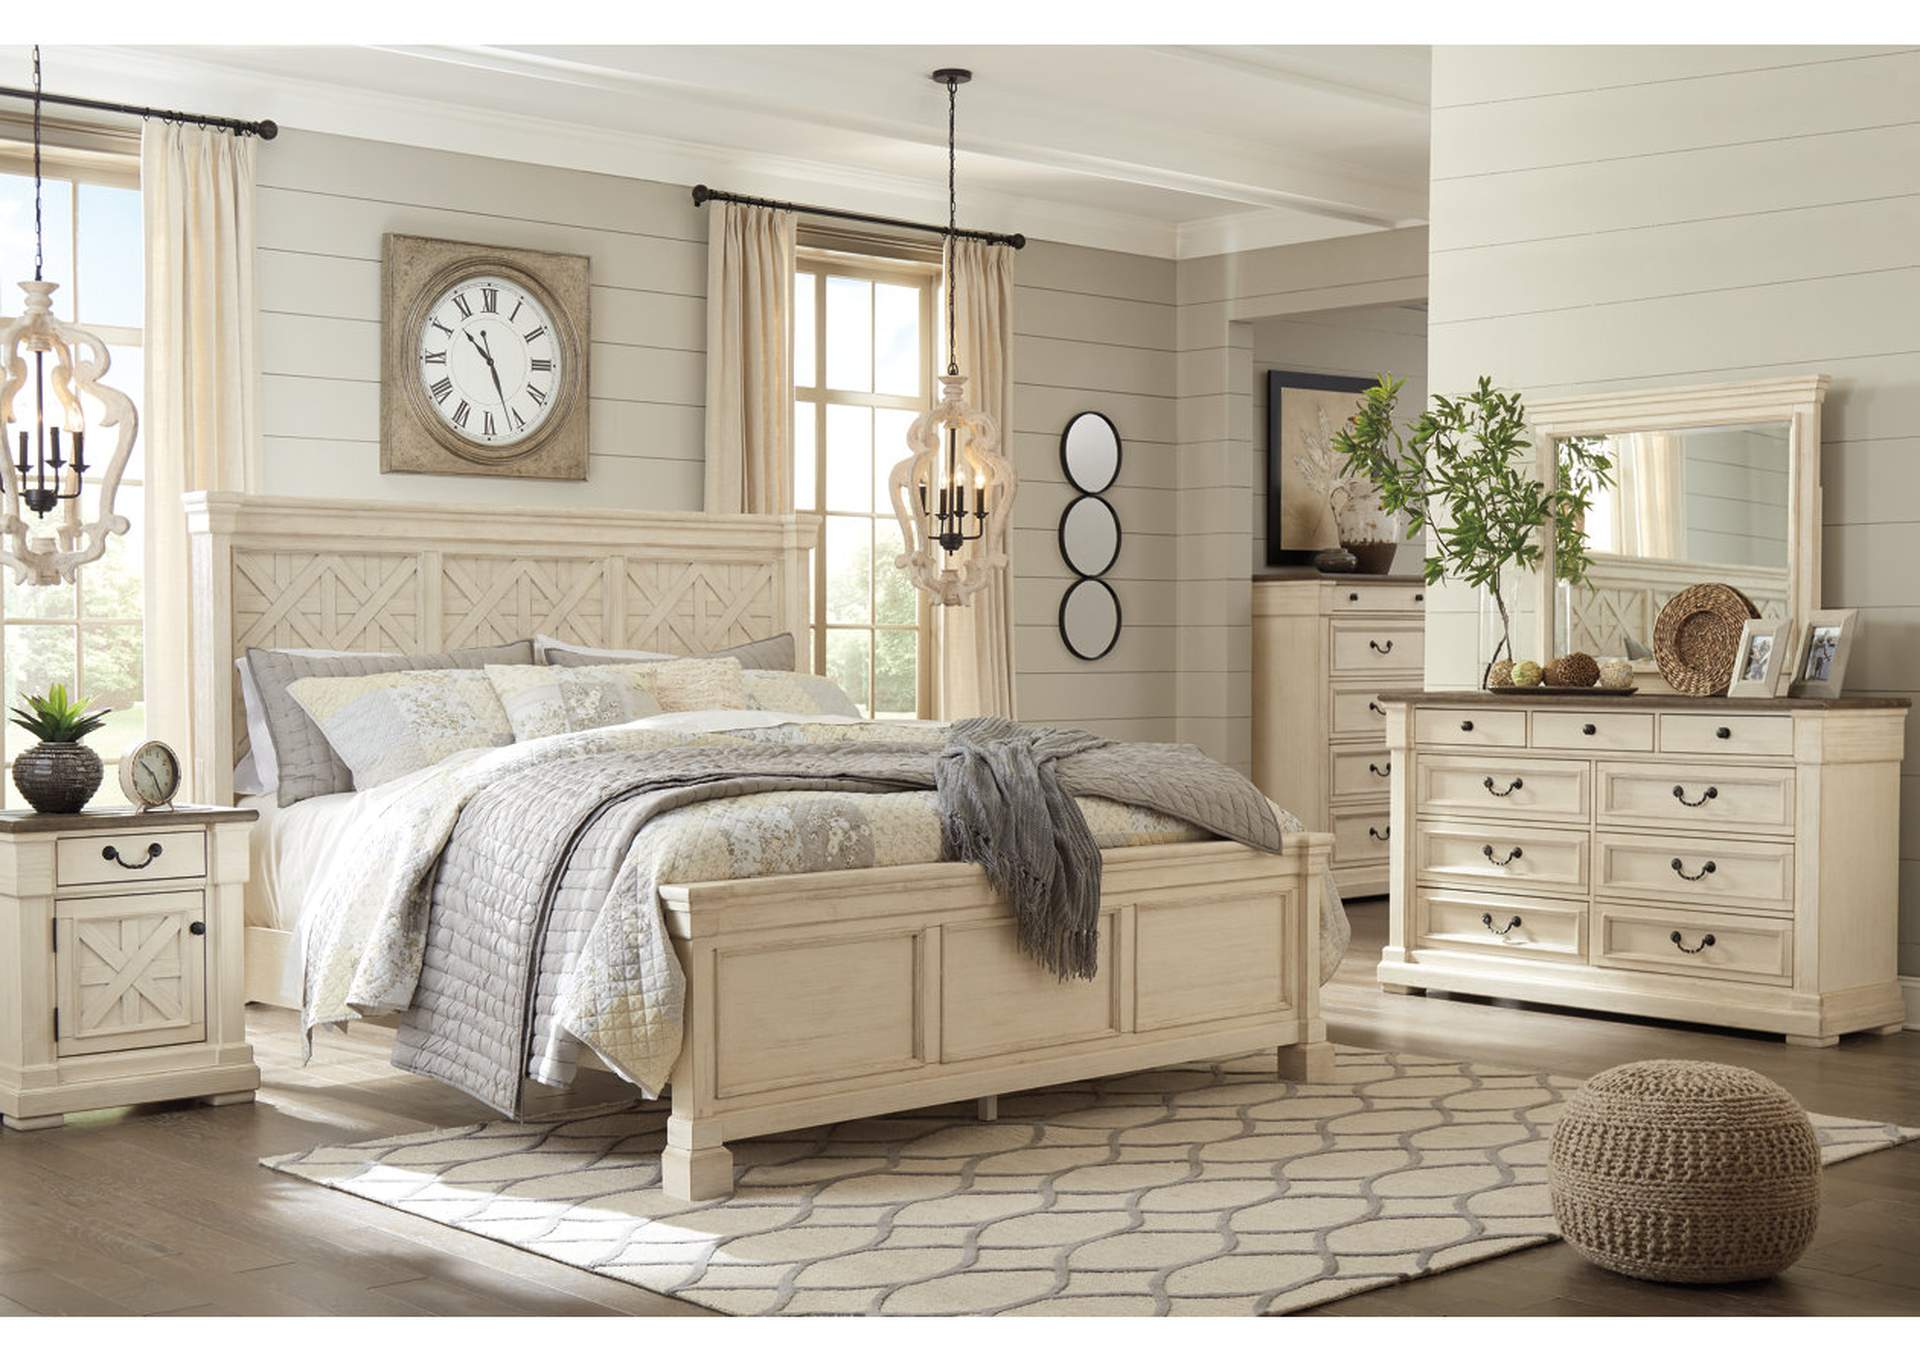 Bolanburg King Panel Bed w/Dresser and Mirror